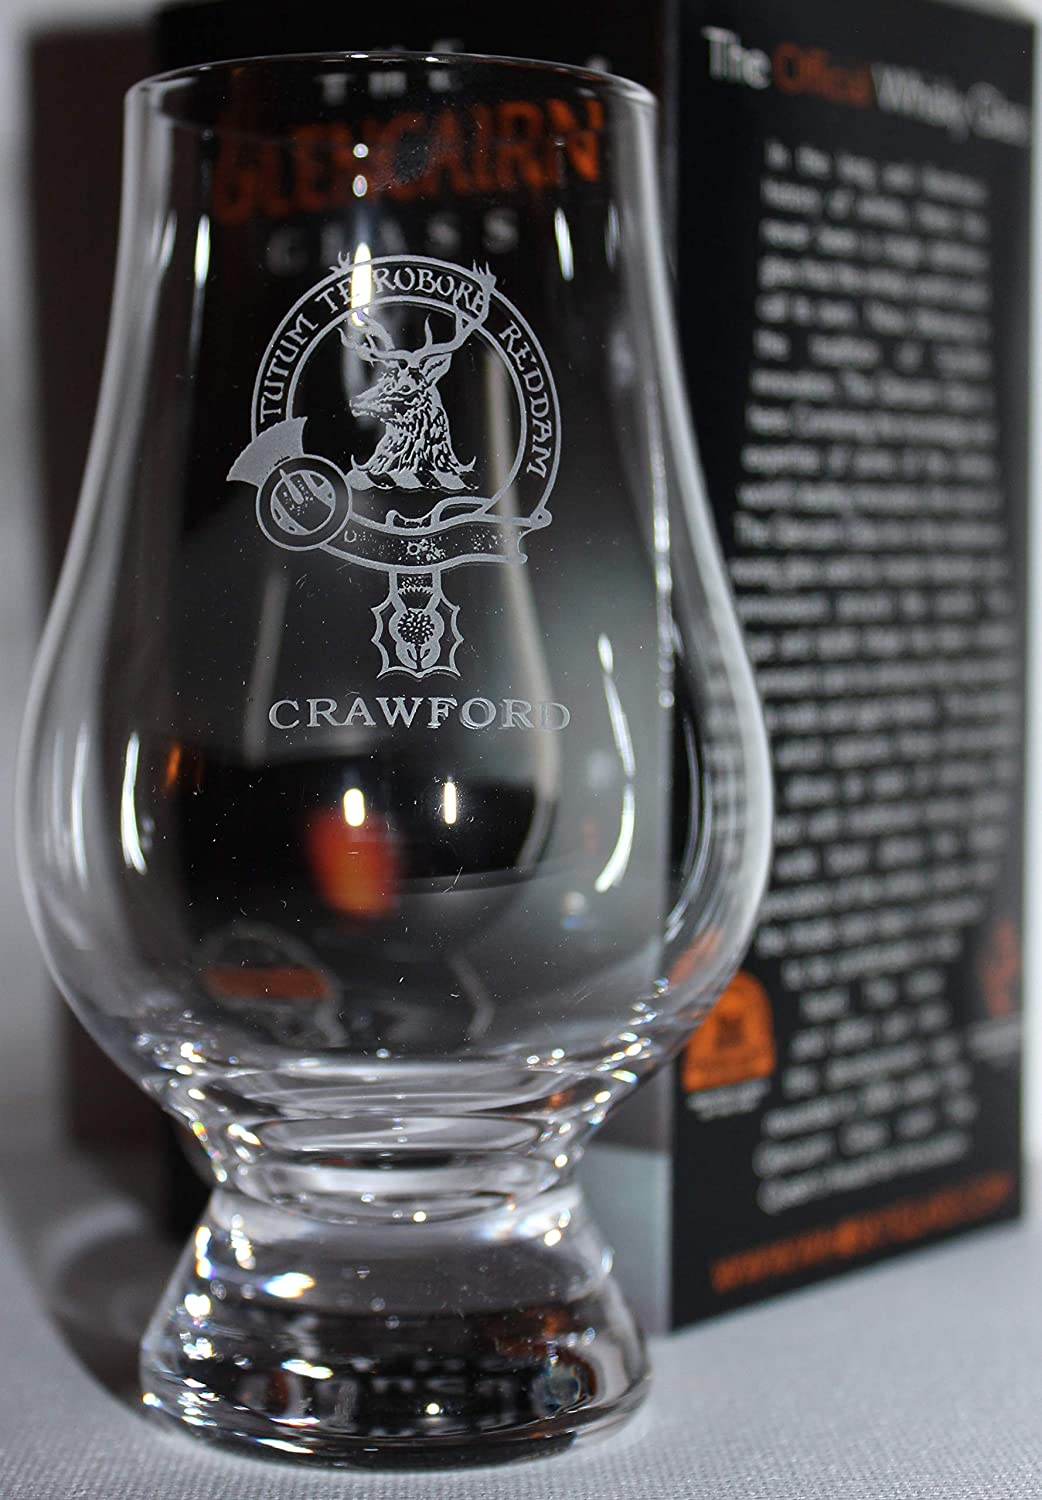 CLAN CRAWFORD GLENCAIRN SINGLE MALT SCOTCH WHISKY TASTING GLASS